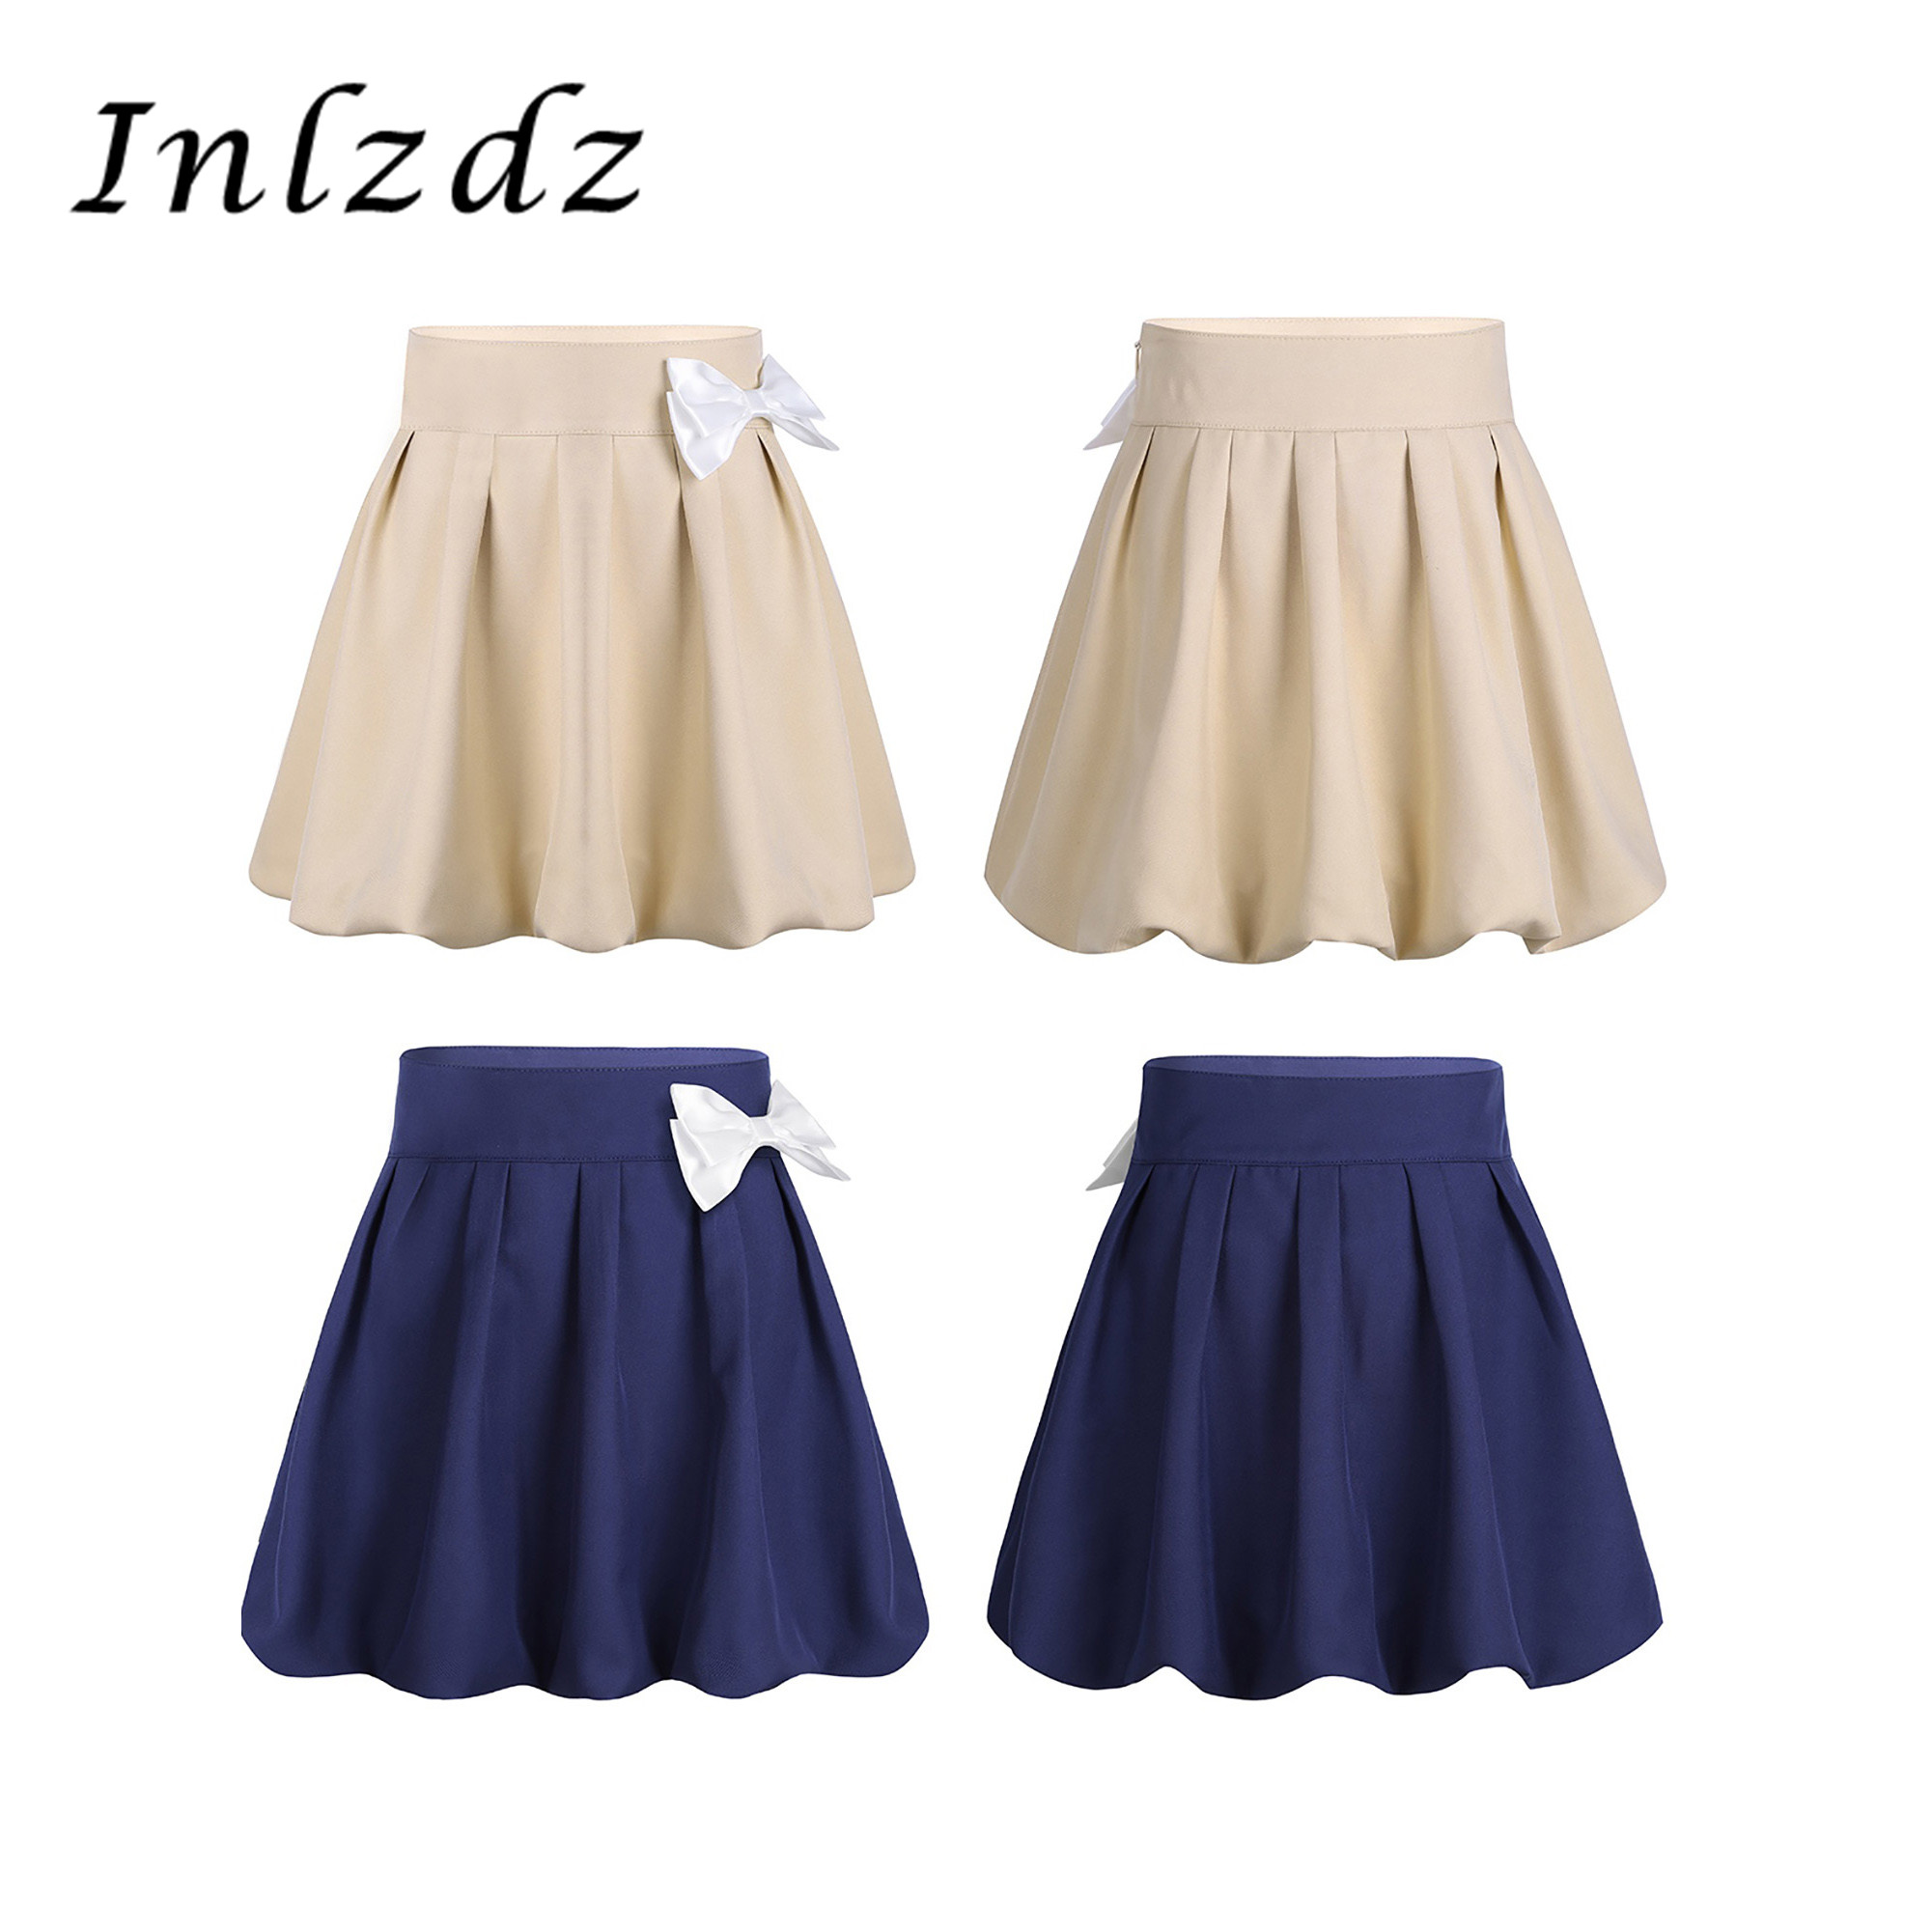 Kids Girls School Uniform Pleated Bowknot Scooter Sports Skirt With Hidden Shorts Elemently School Student's Mini Scooter Skirt